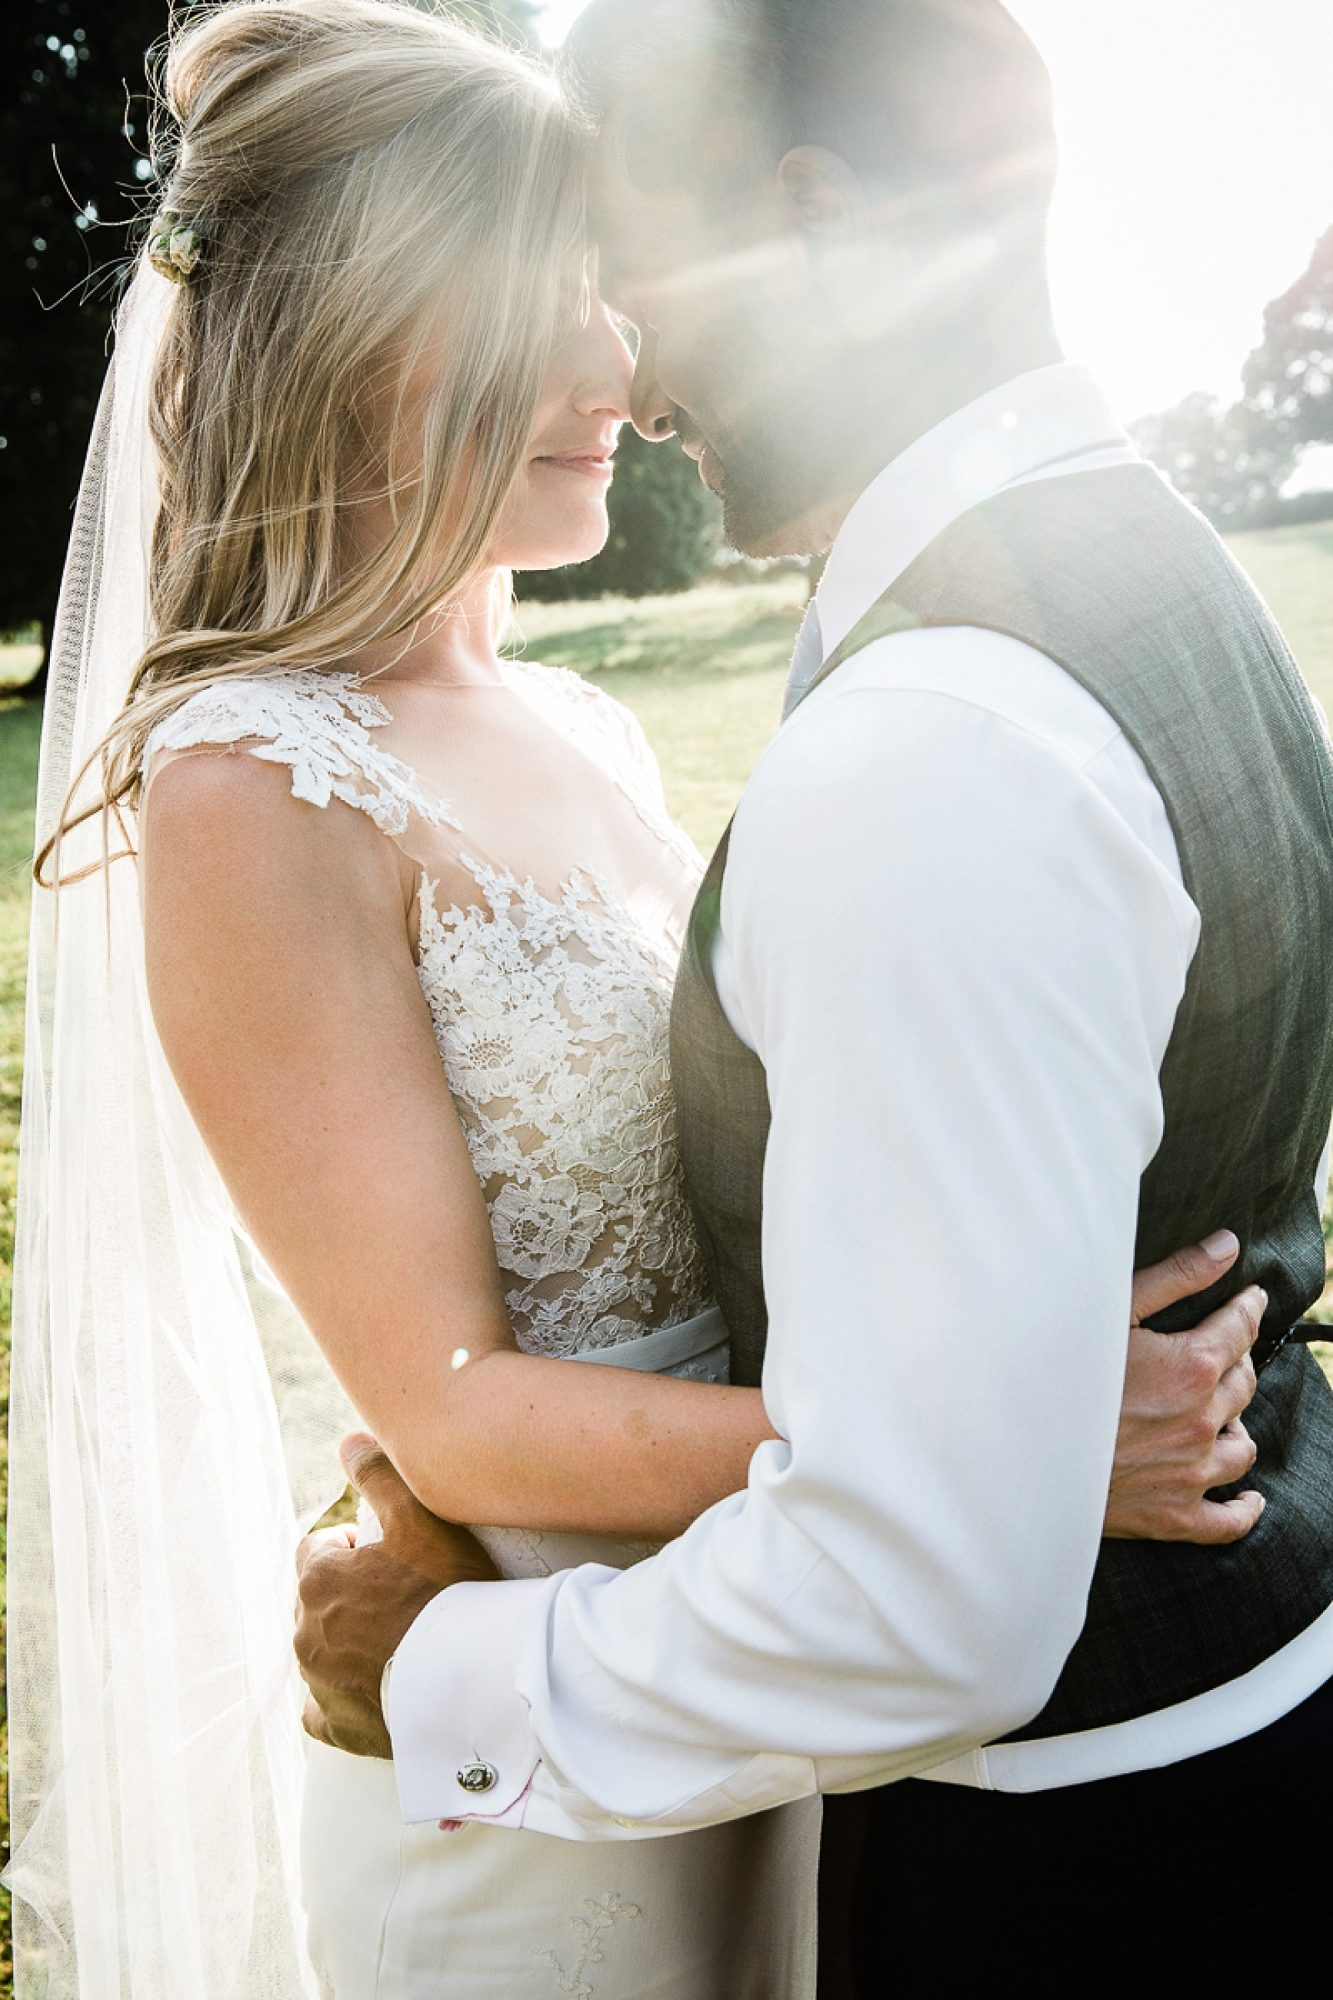 the sun refracts as a couple embrace in the gardens of their Pynes house wedding